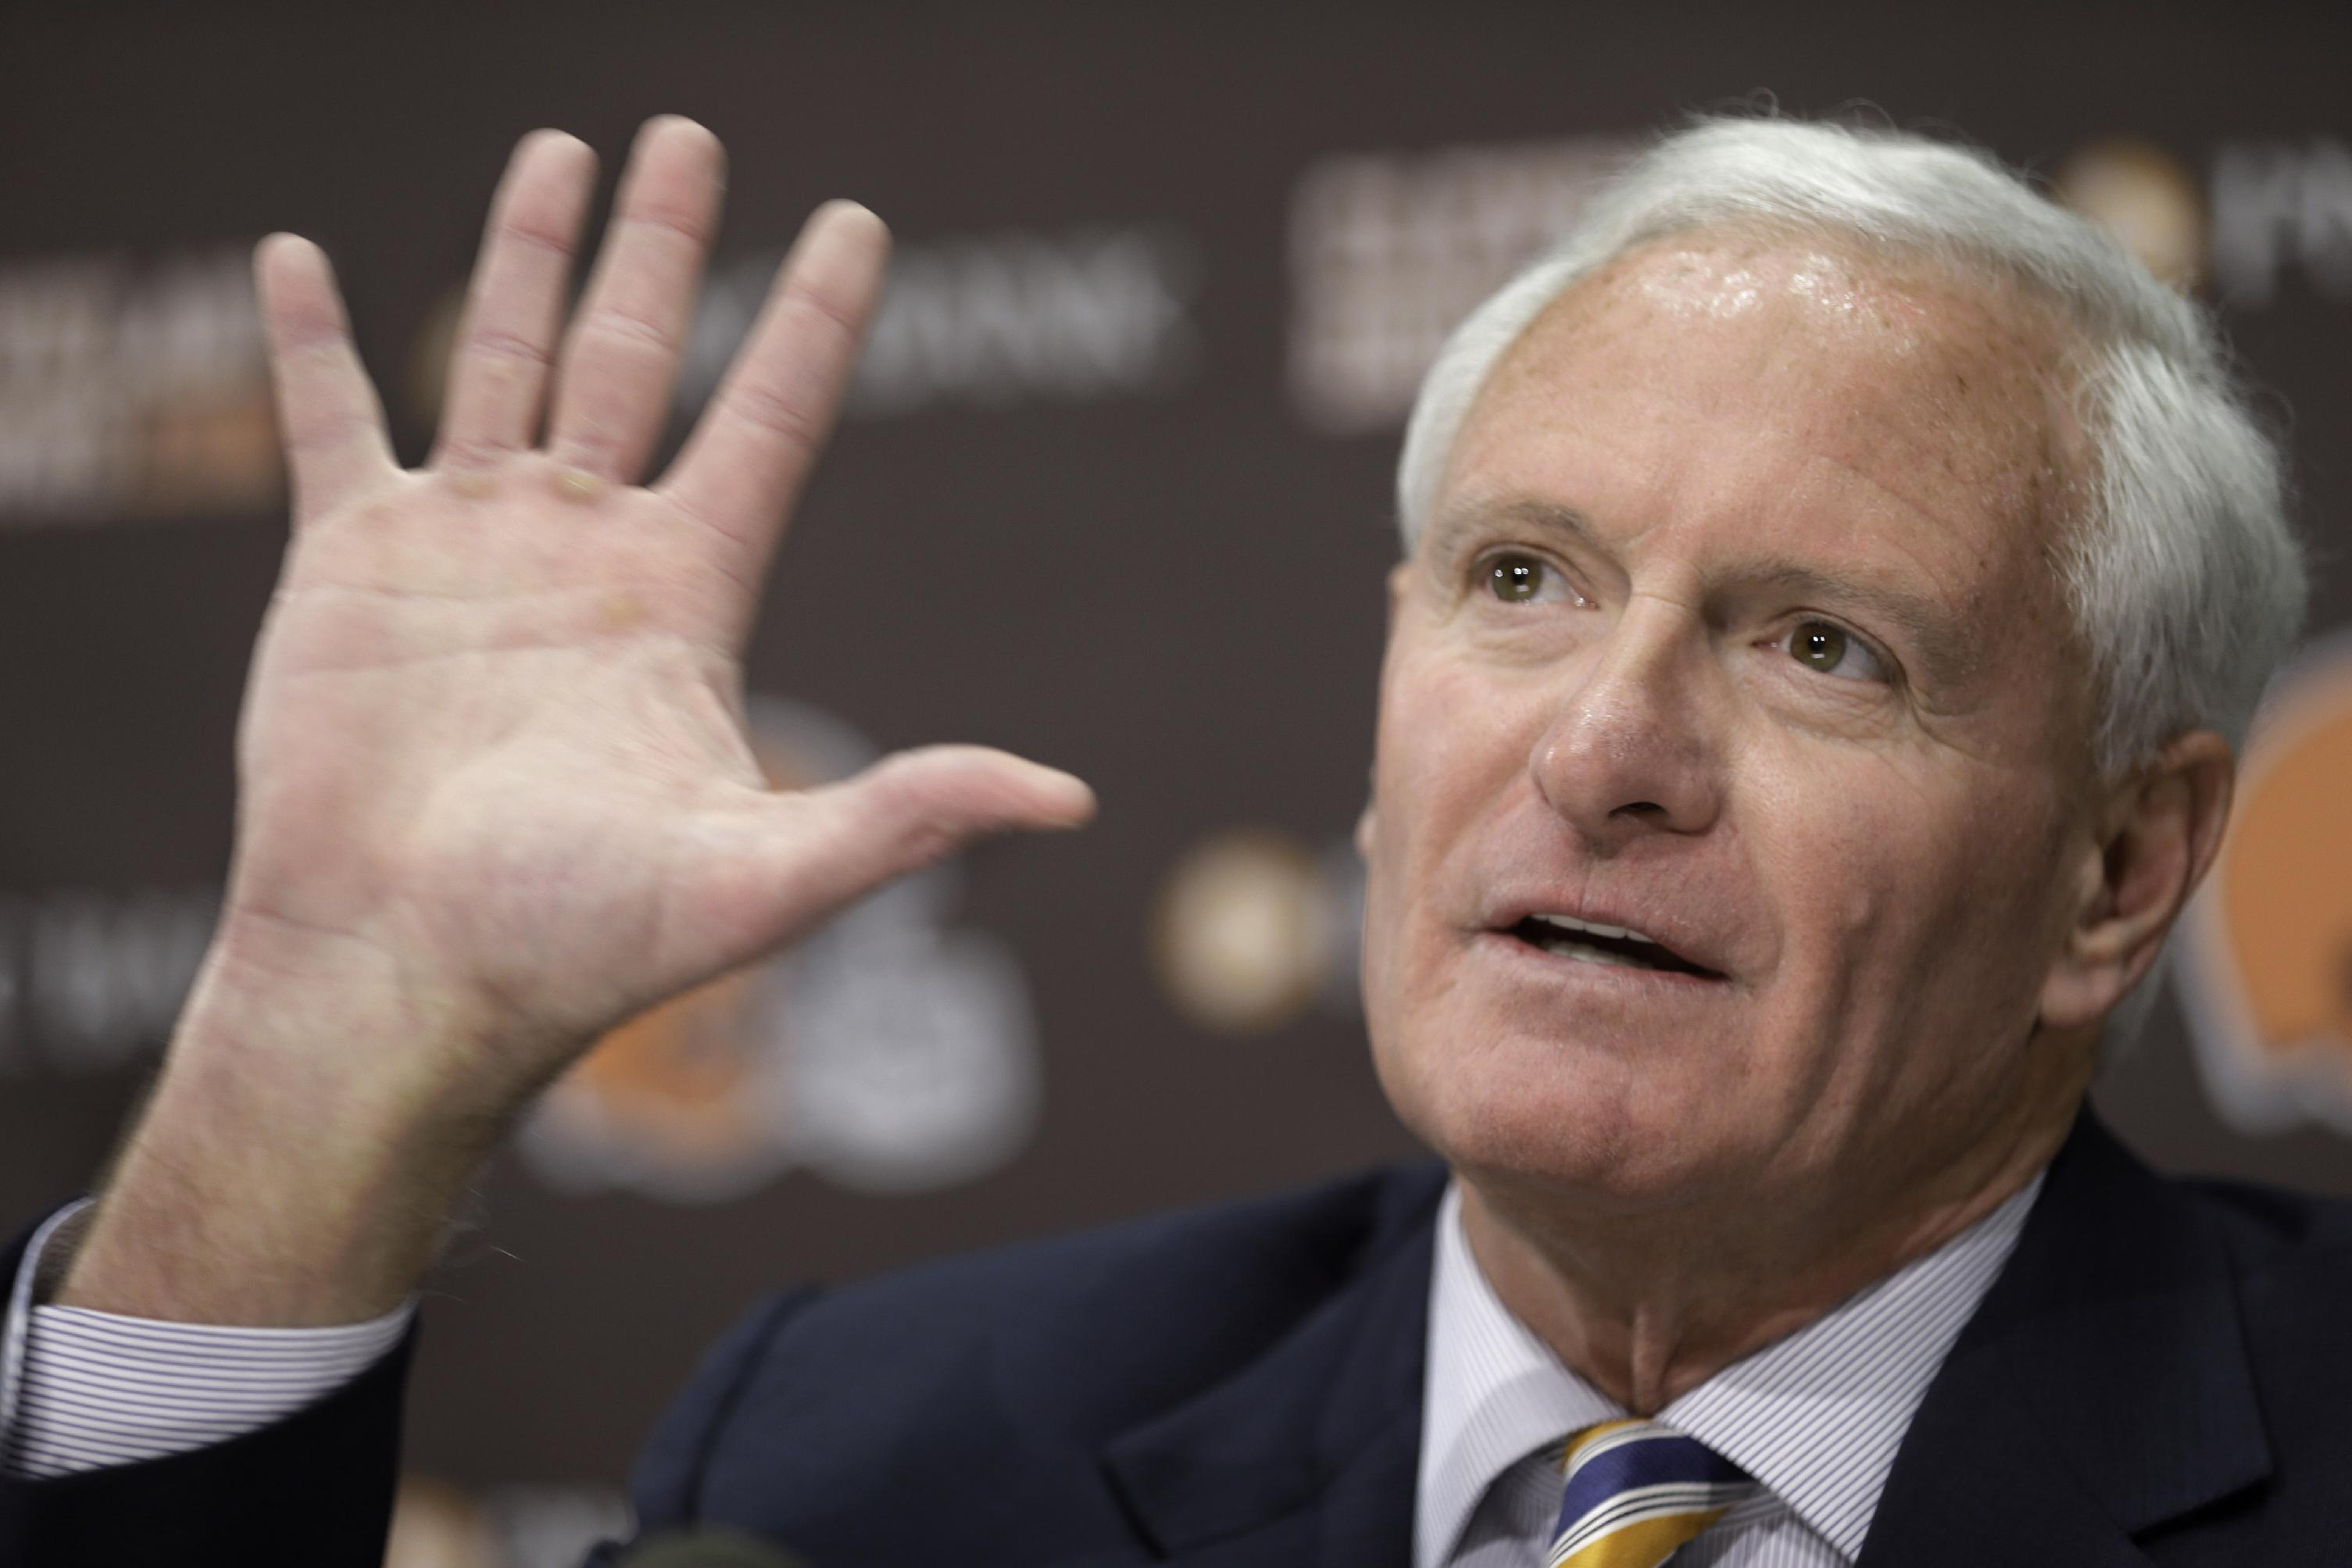 Cleveland Browns owner Jimmy Haslam answers questions during a news conference Tuesday, Feb. 11, 2014, in Berea, Ohio. Haslam announced Tuesday that CEO Joe Banner will step down in the next two months and general manager Michael Lombardi is leaving the team. Haslam added that president Alec Scheiner will continue to be in charge of the organization's business operations